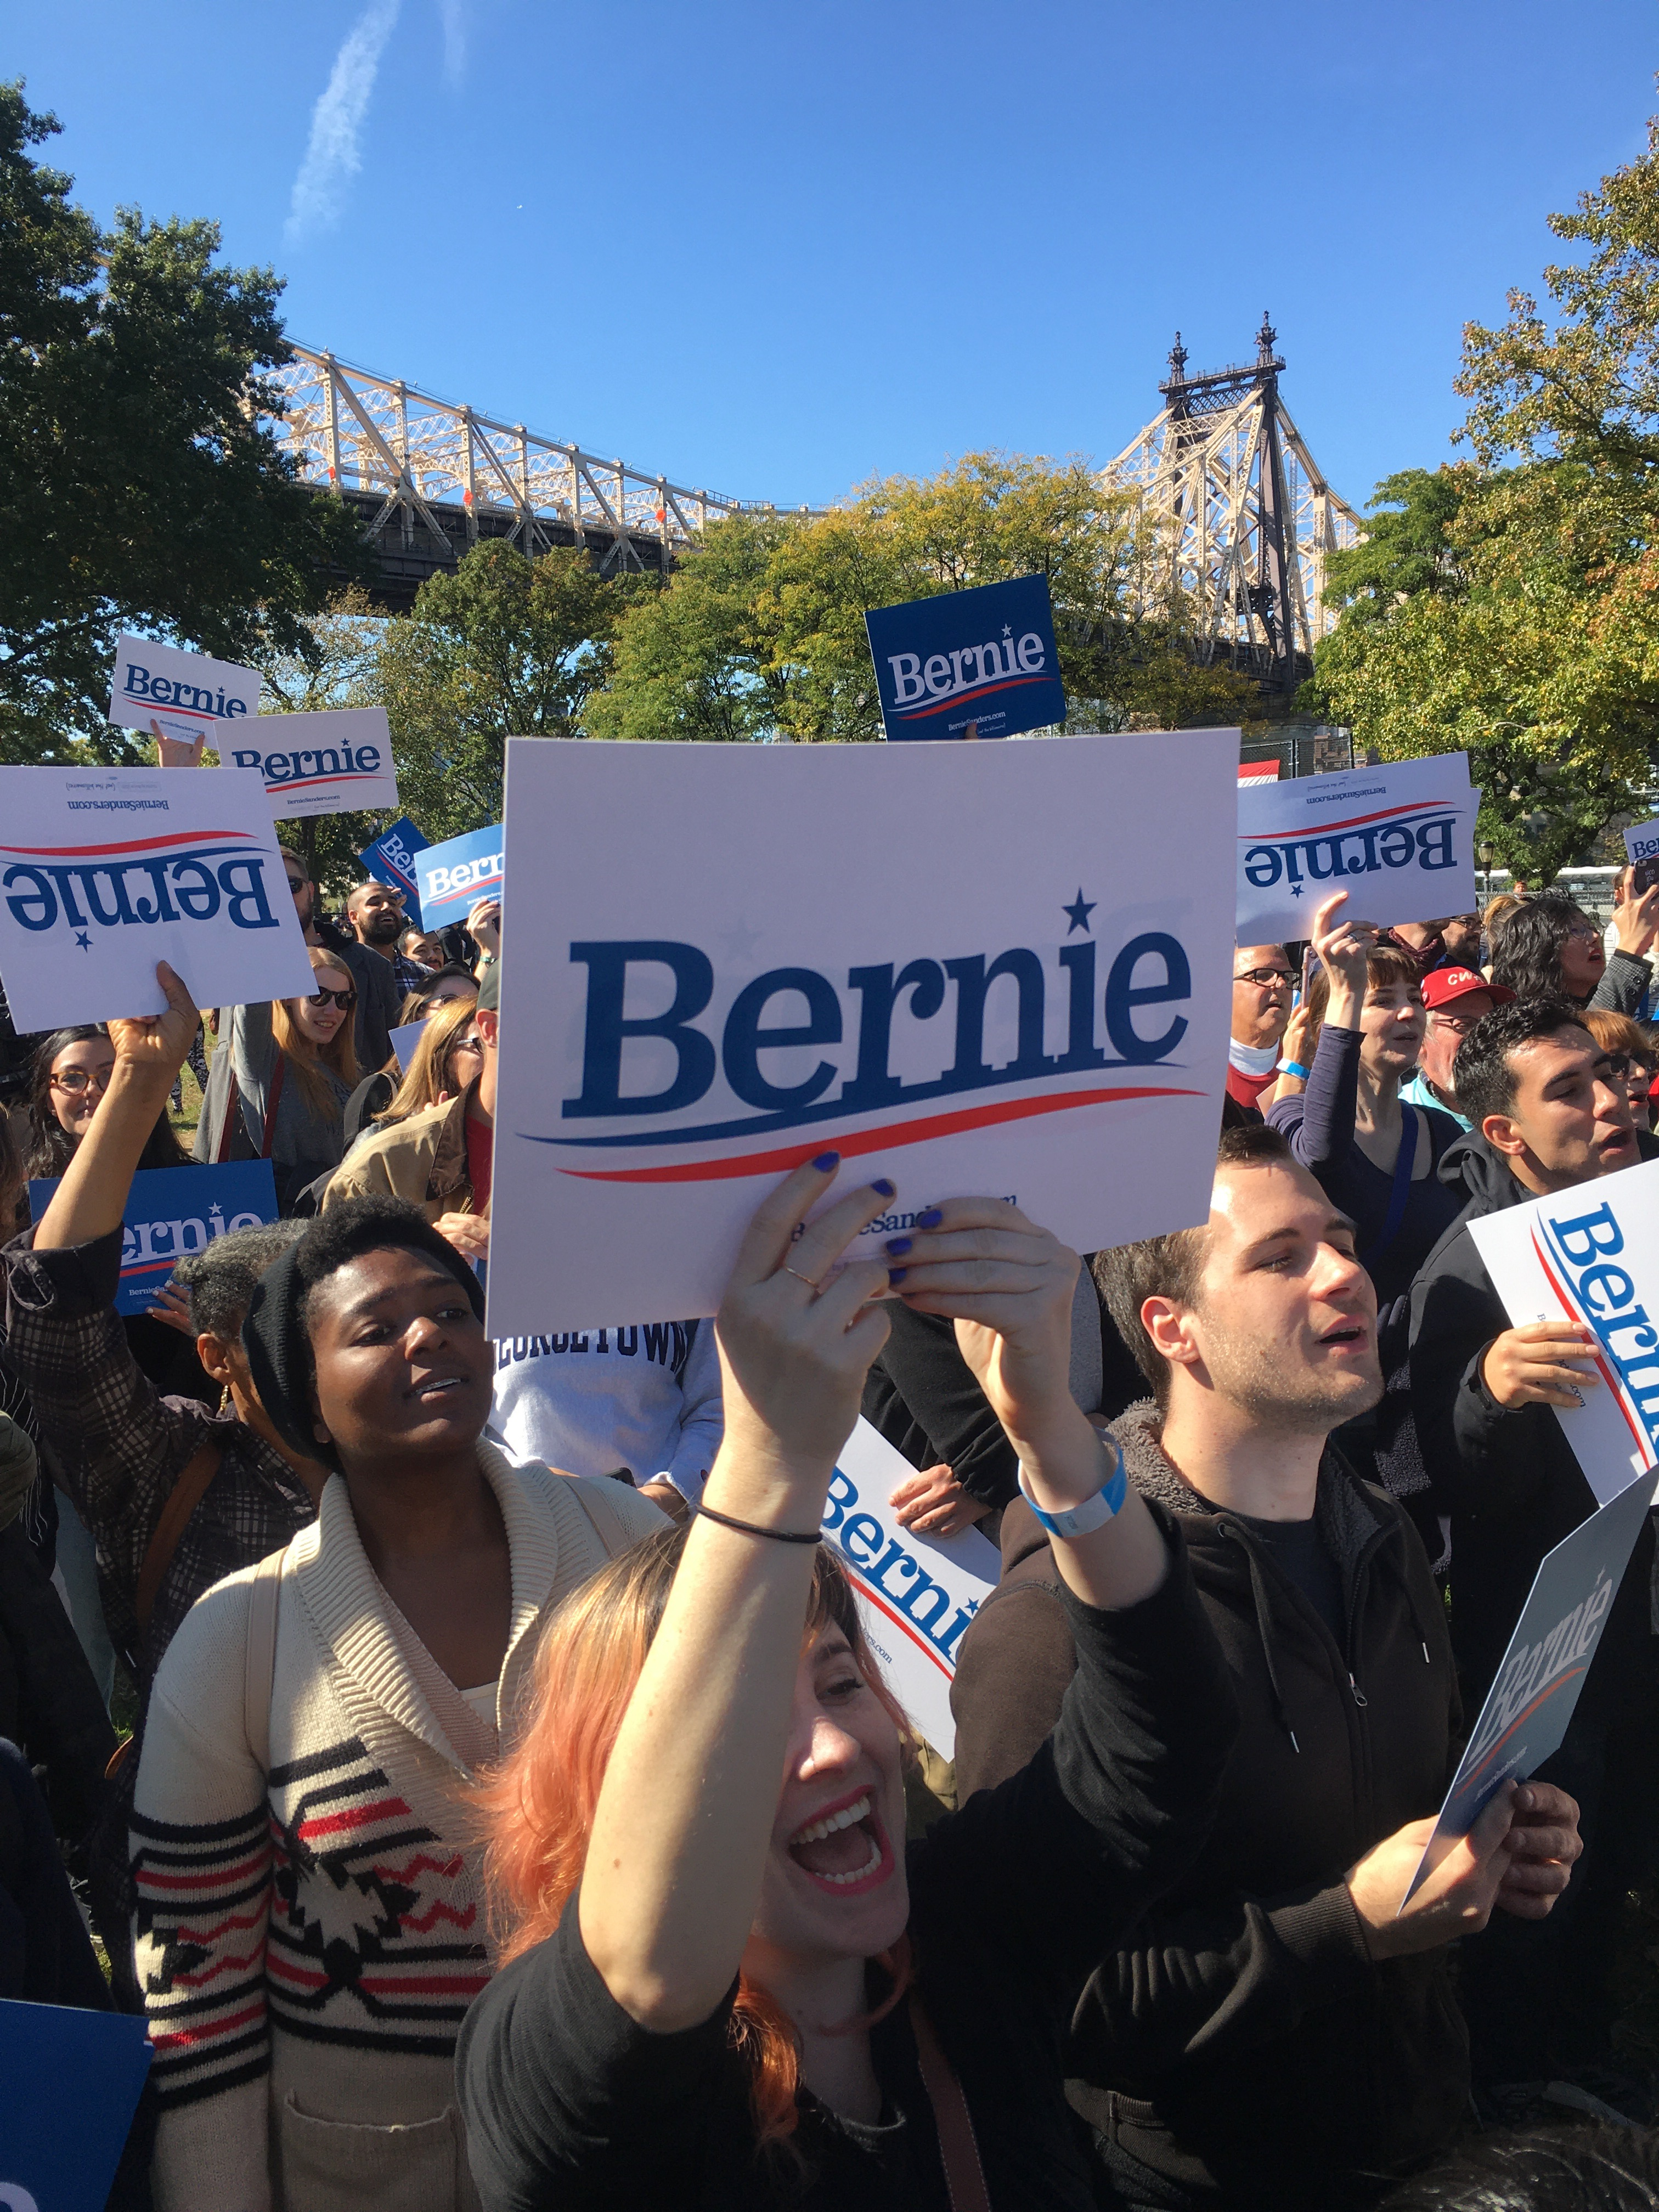 'Bernie's the Guy We Need,' Union Supporters Say as 26,000 Pack Queens Park to Cheer Sanders' Pro-Union, Pro-Worker Agenda